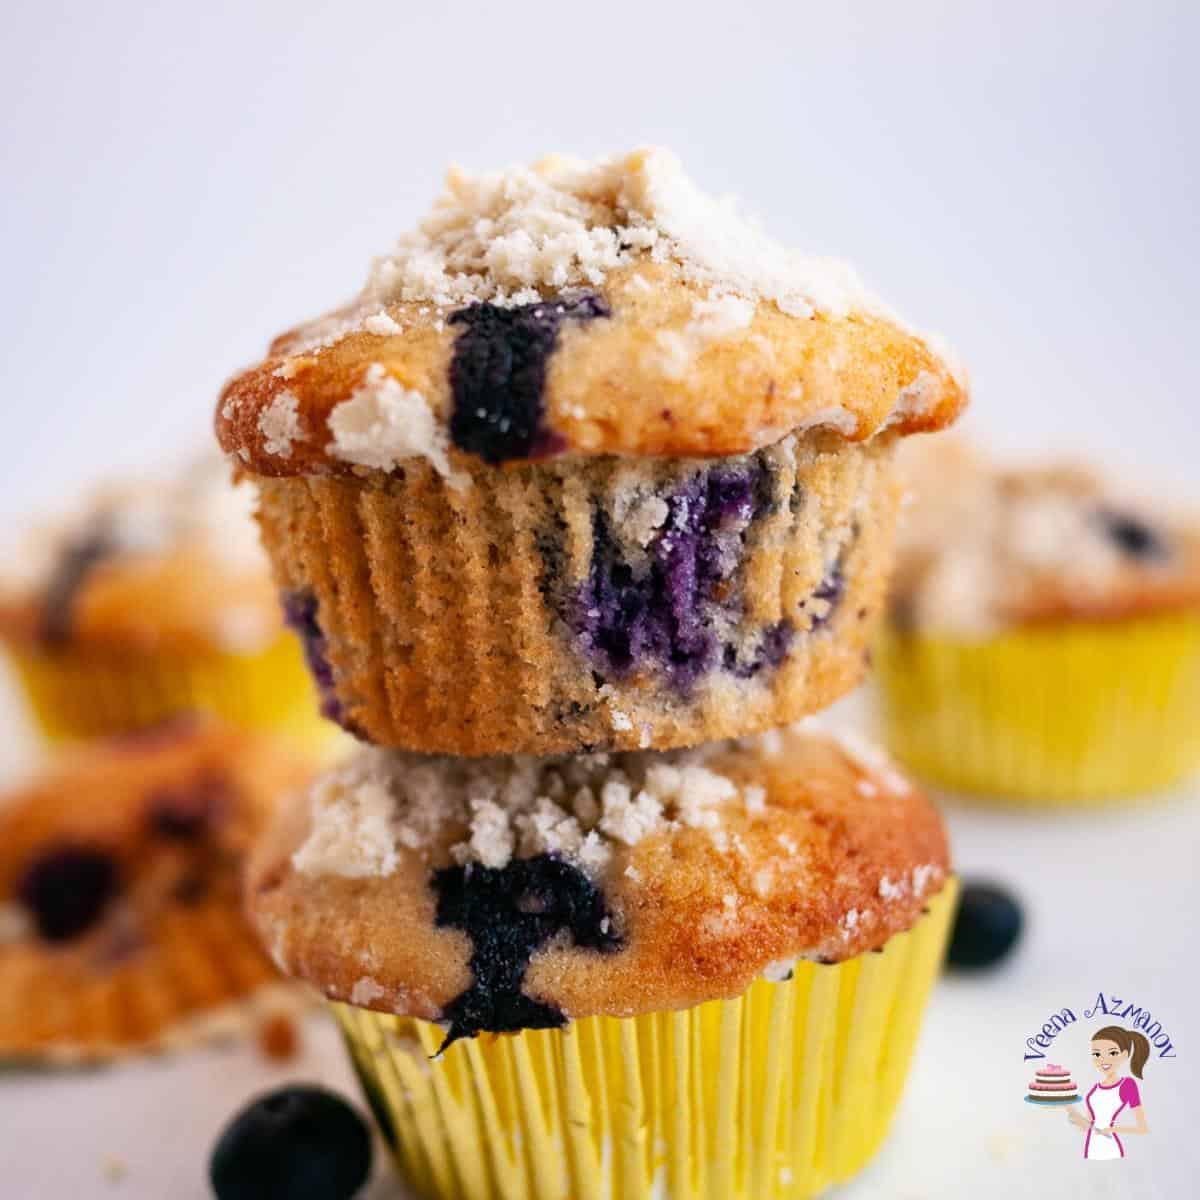 Homemade Muffins made with Blueberries and Crumble Topping